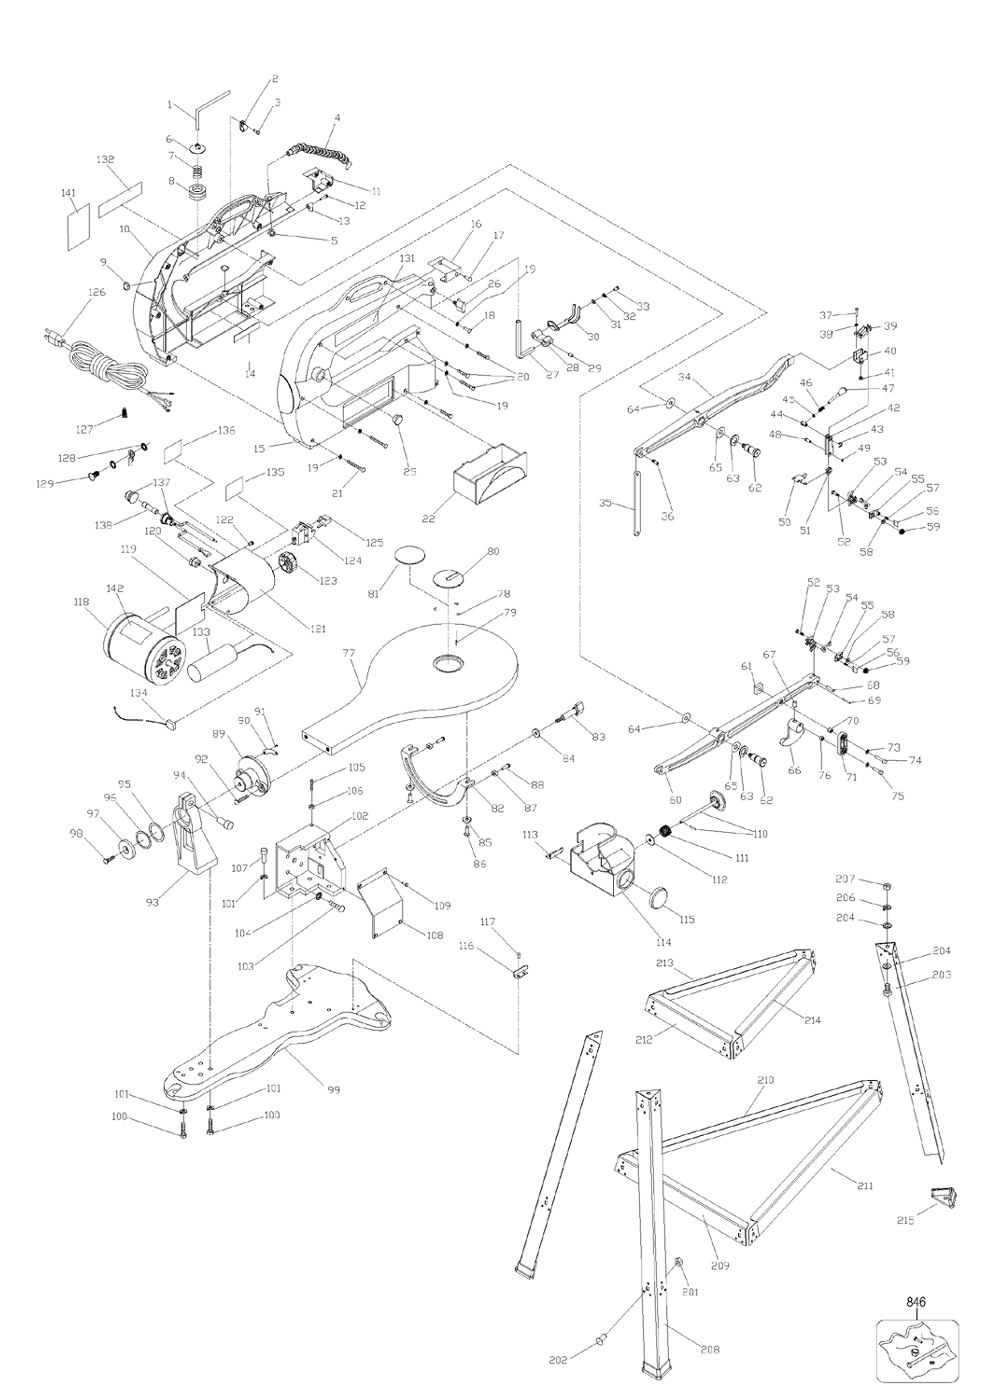 Main Body Diagram And Parts List For Dyson Inc Vacuumparts Model